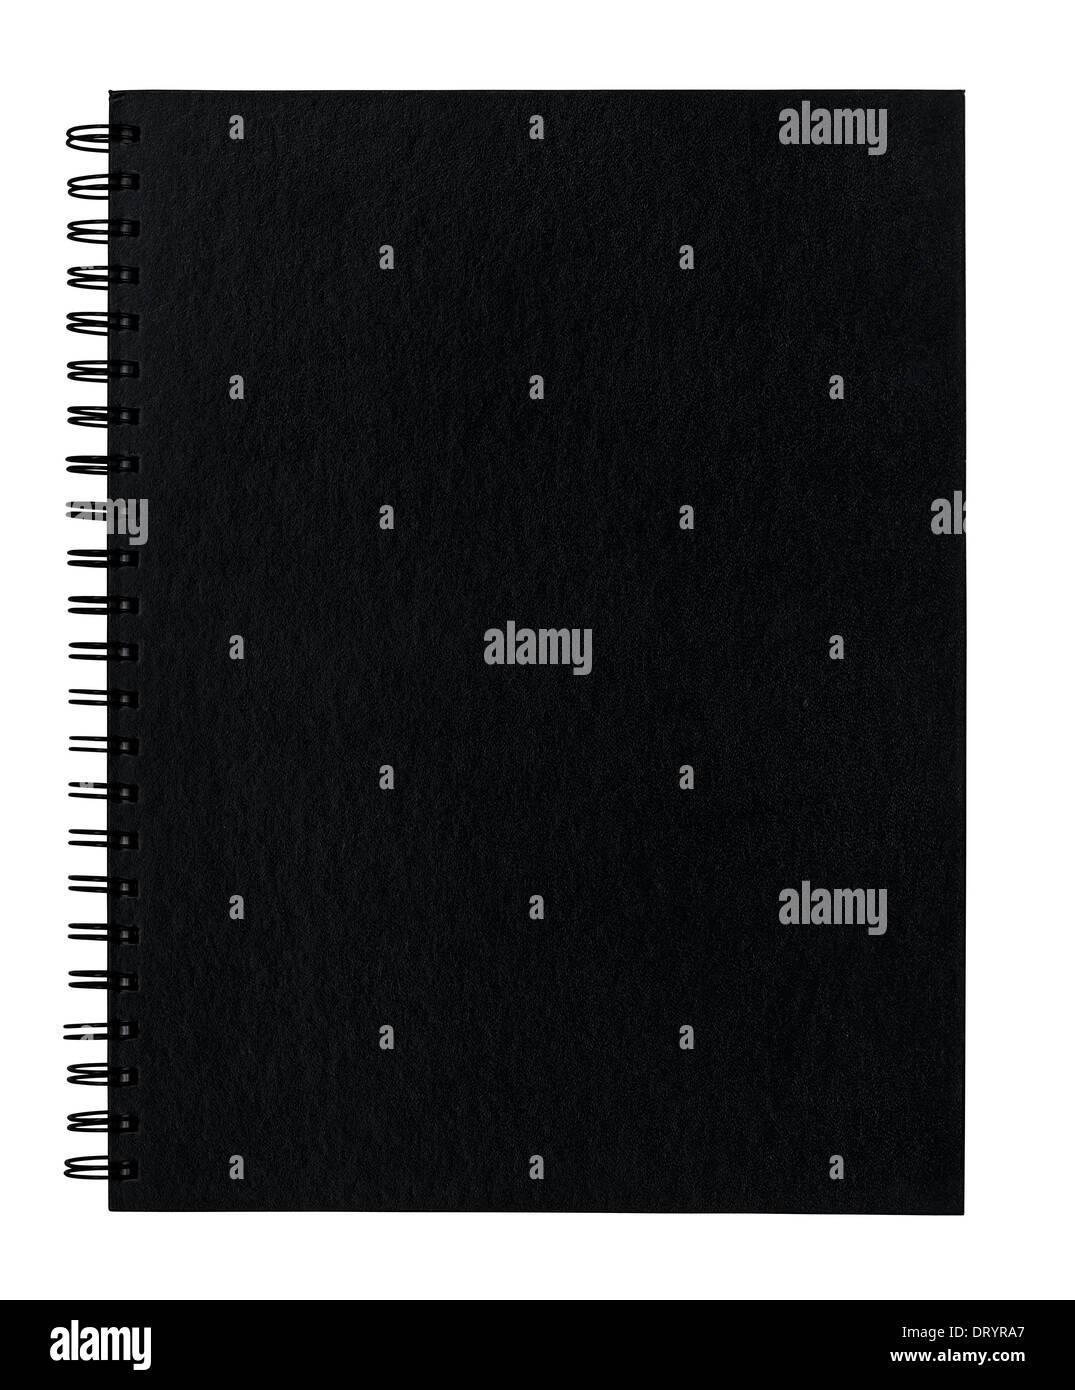 Blank spiral bound scrap book front cover with empty copy space for insertion of your message or design elements. - Stock Image